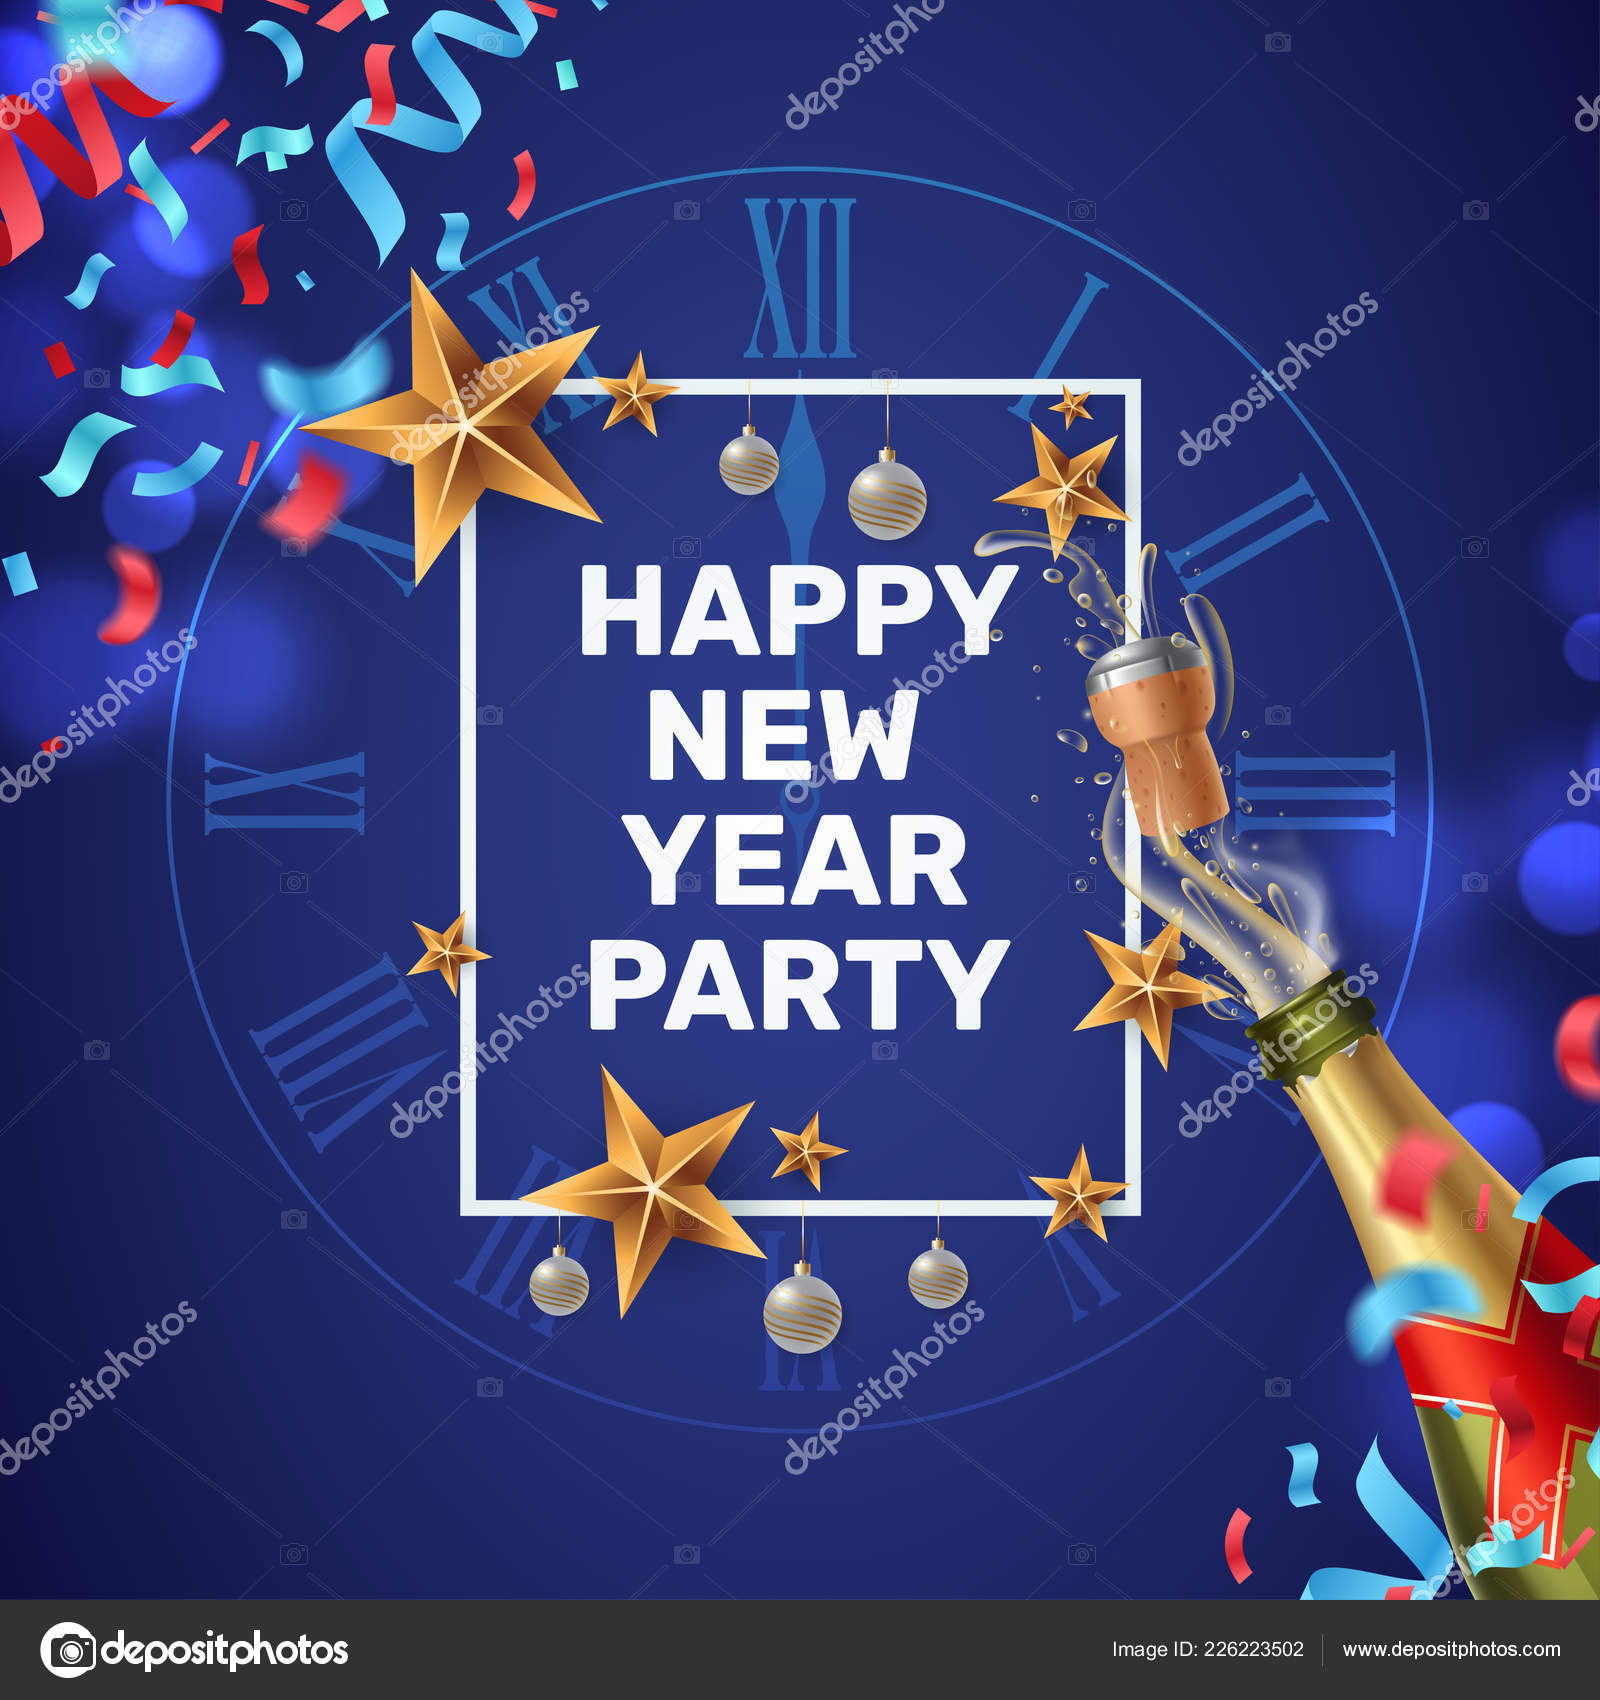 happy new year party invitation composition with a festive frame clock face colorful confetti and a shot of champagne new year greeting card template